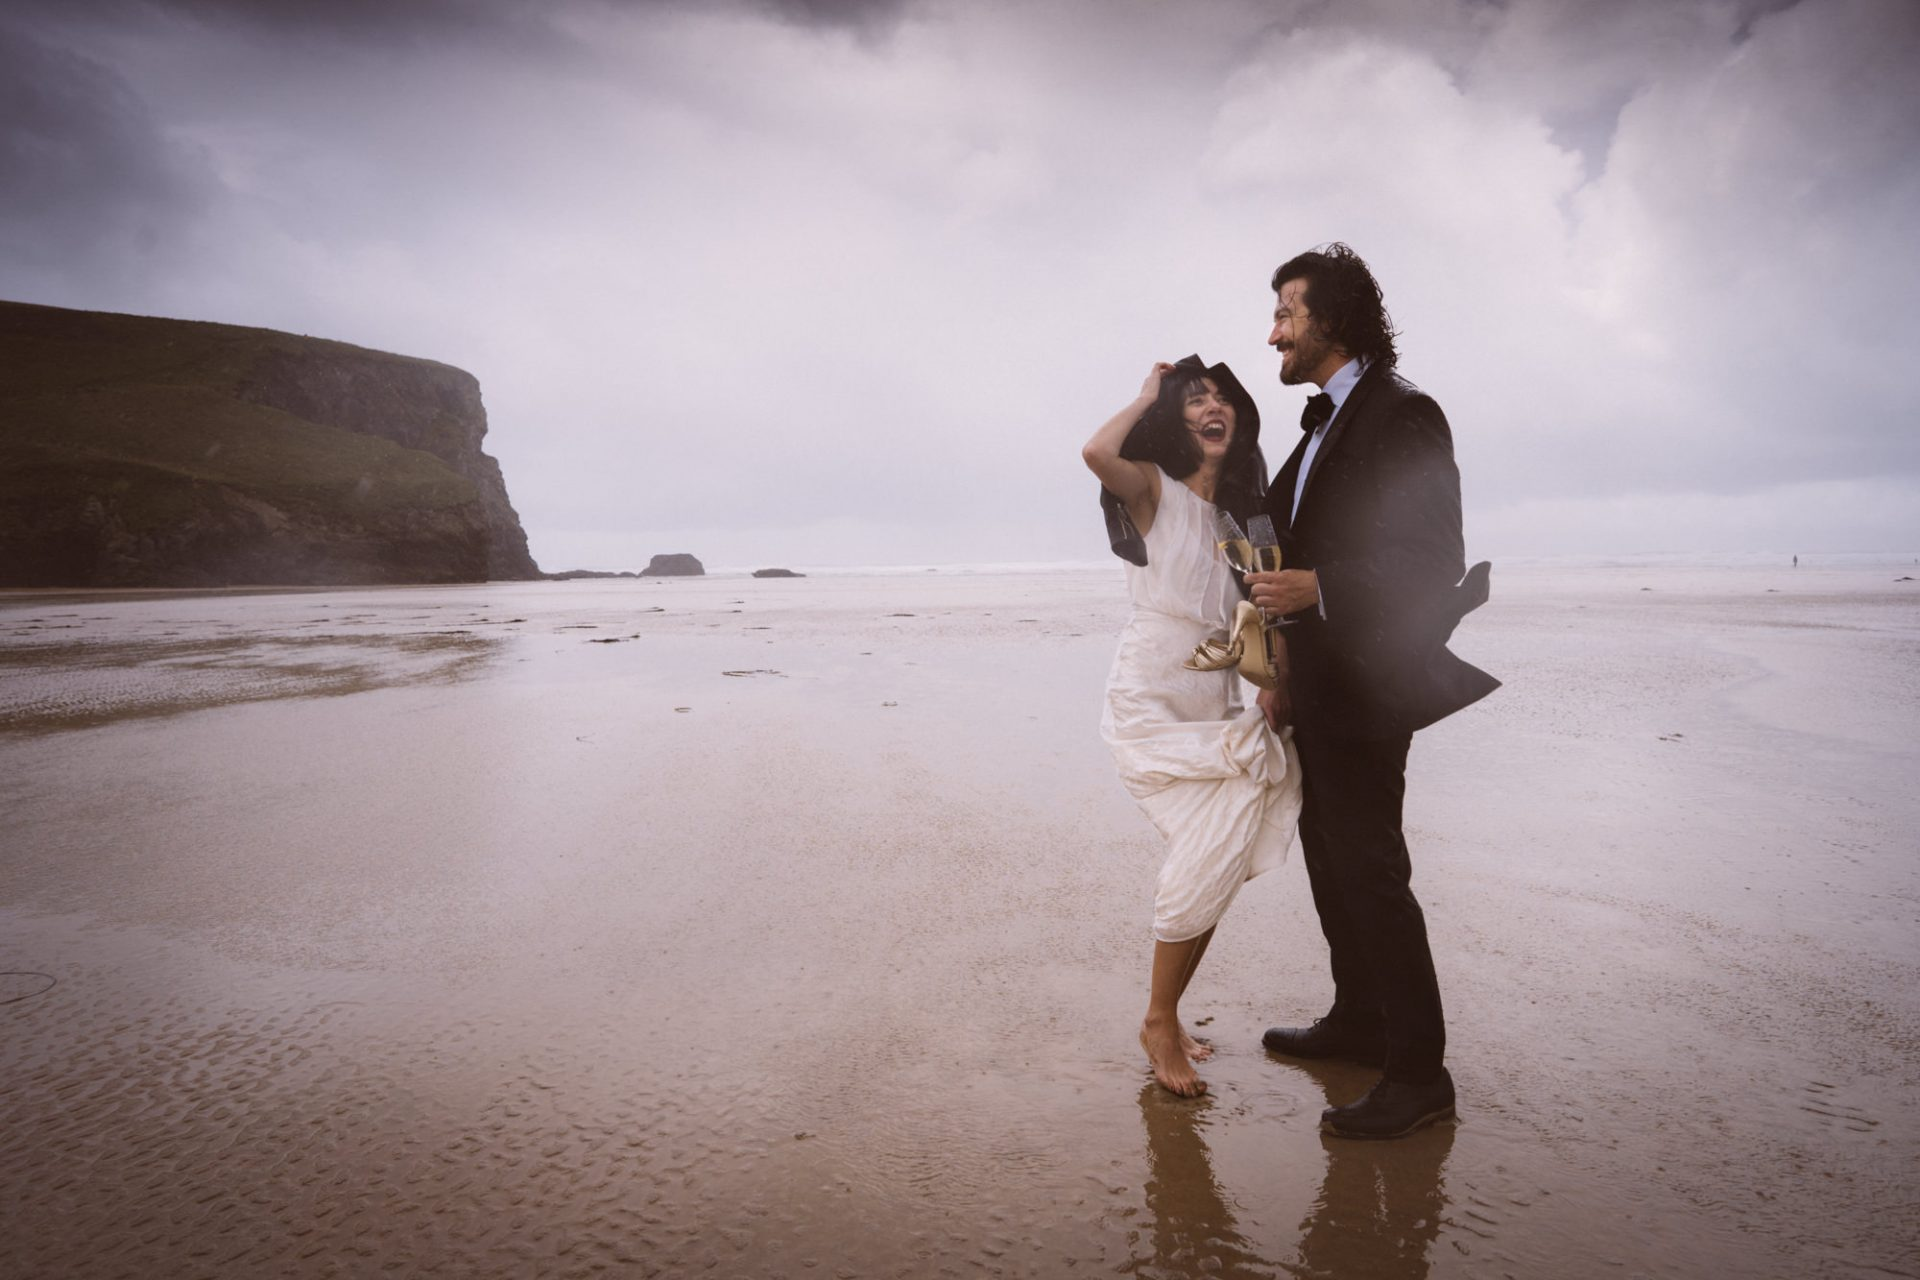 Aude and Ryan The Scarlet Hotel Elopement Wedding